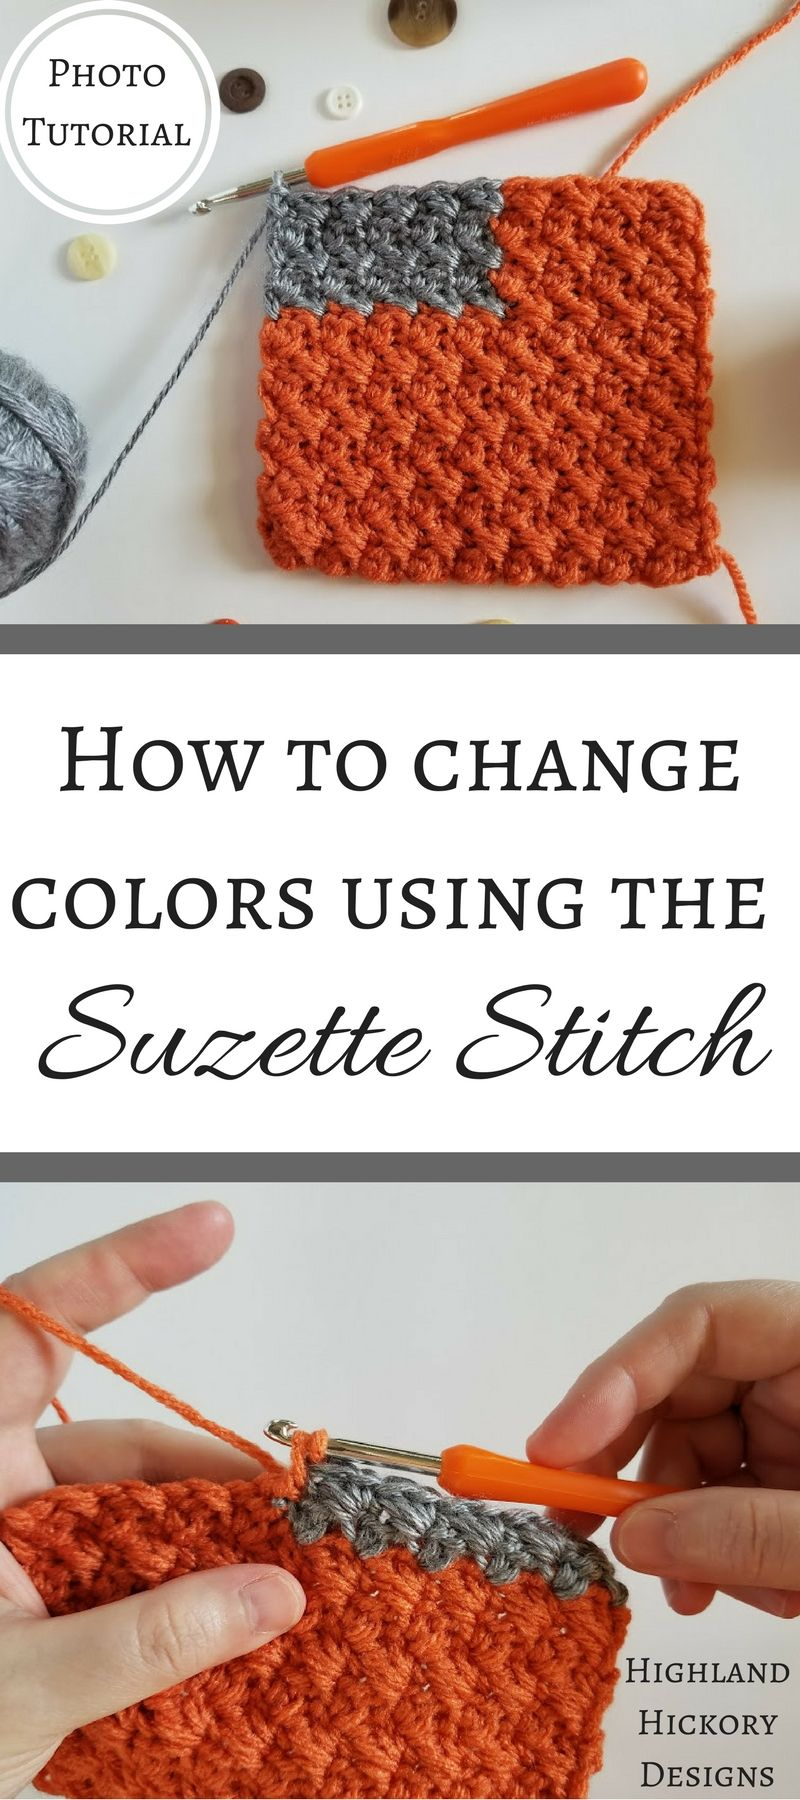 How To Change Colors Using The Suzette Stitch | To Crochet ...